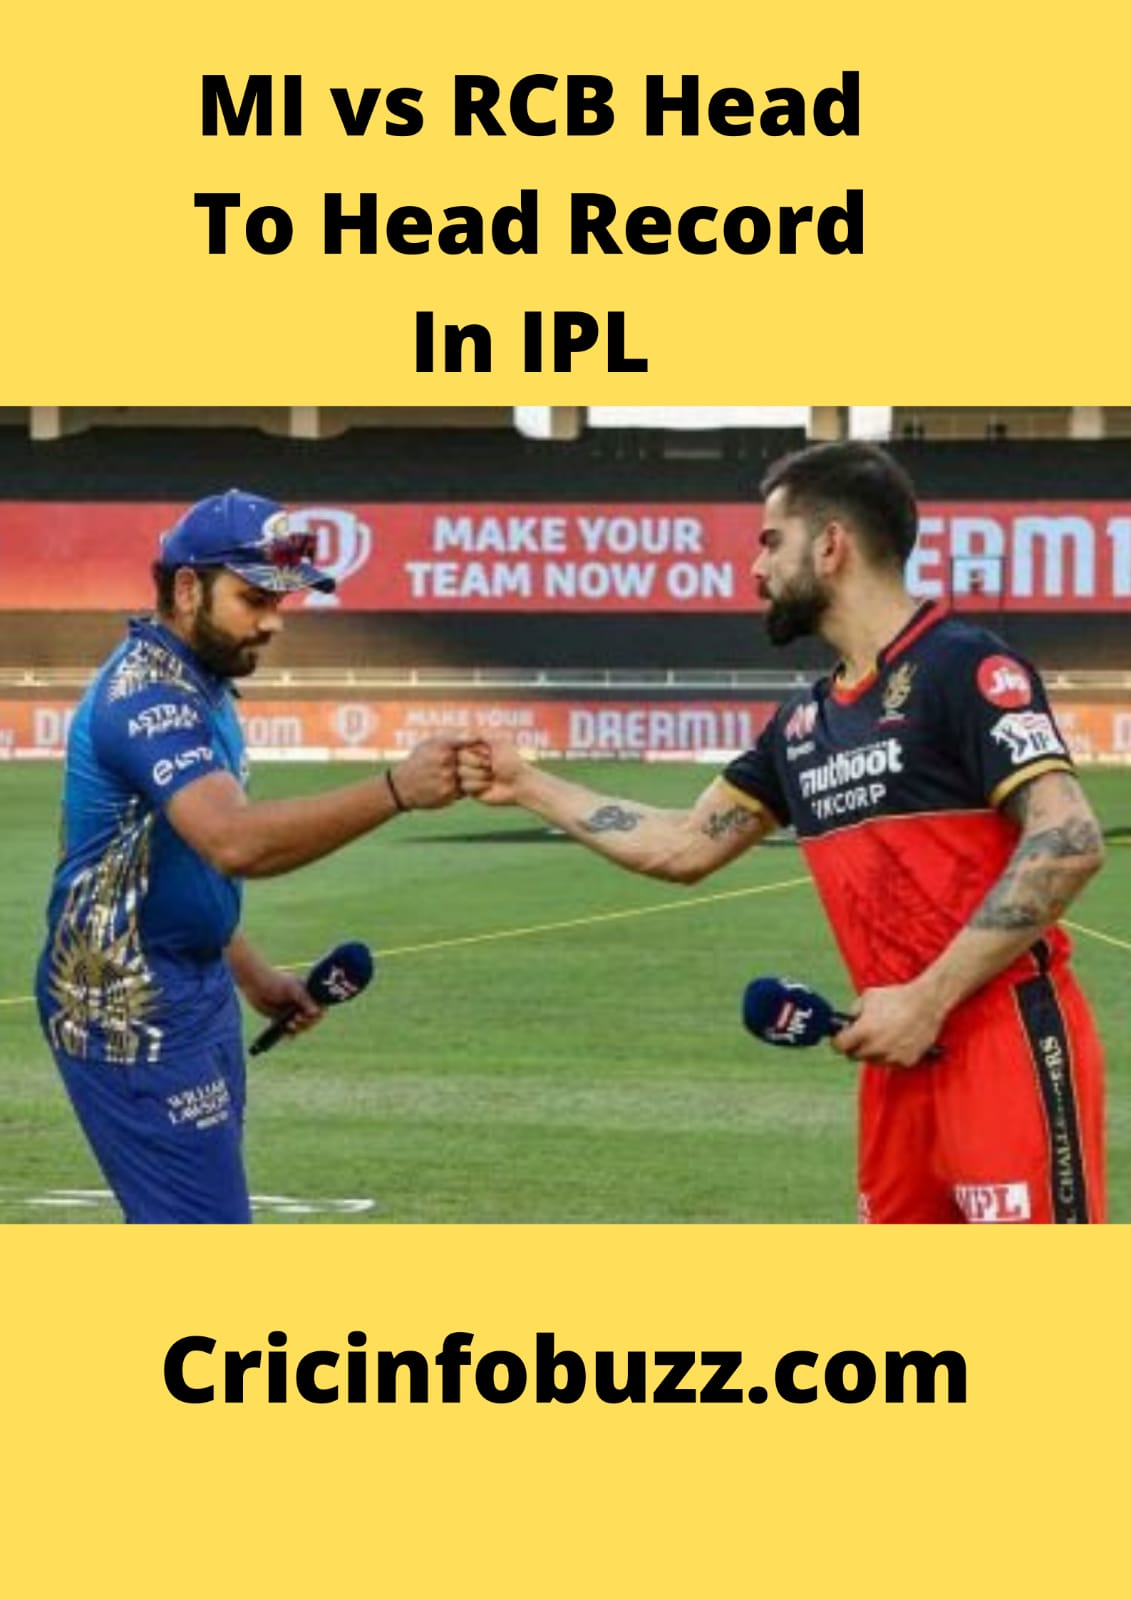 Mumbai Indians vs Royal Challengers Bangalore Head To Head Record In IPL